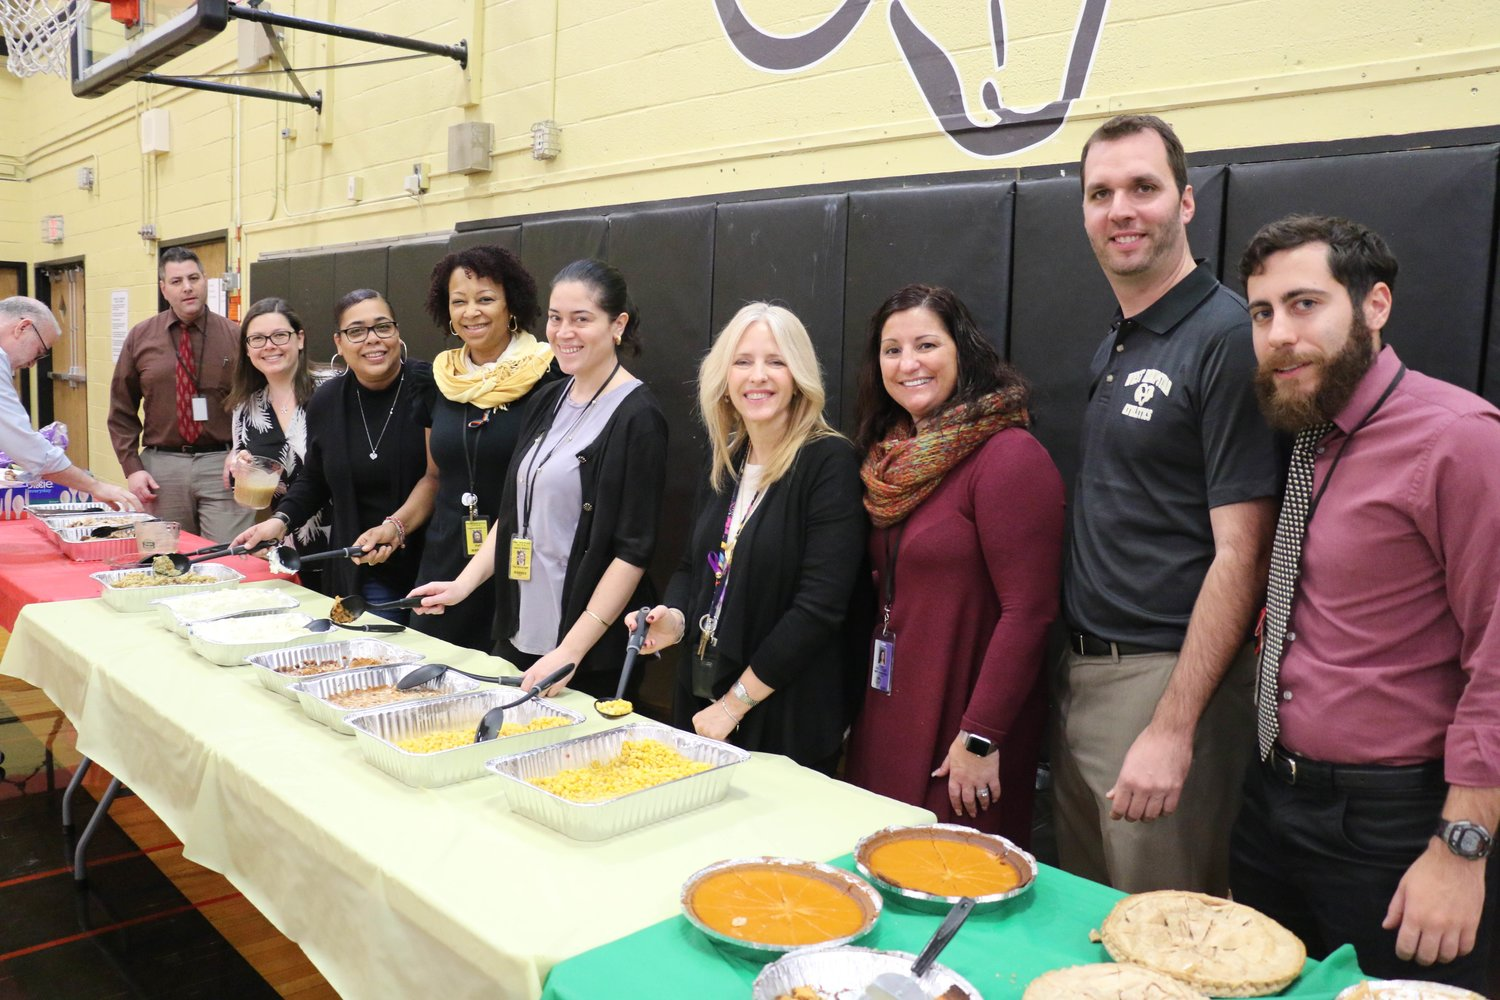 The West Hempstead English as a New Language staff members were all smiles during the department's annual Thanksgiving luncheon on Nov. 21.